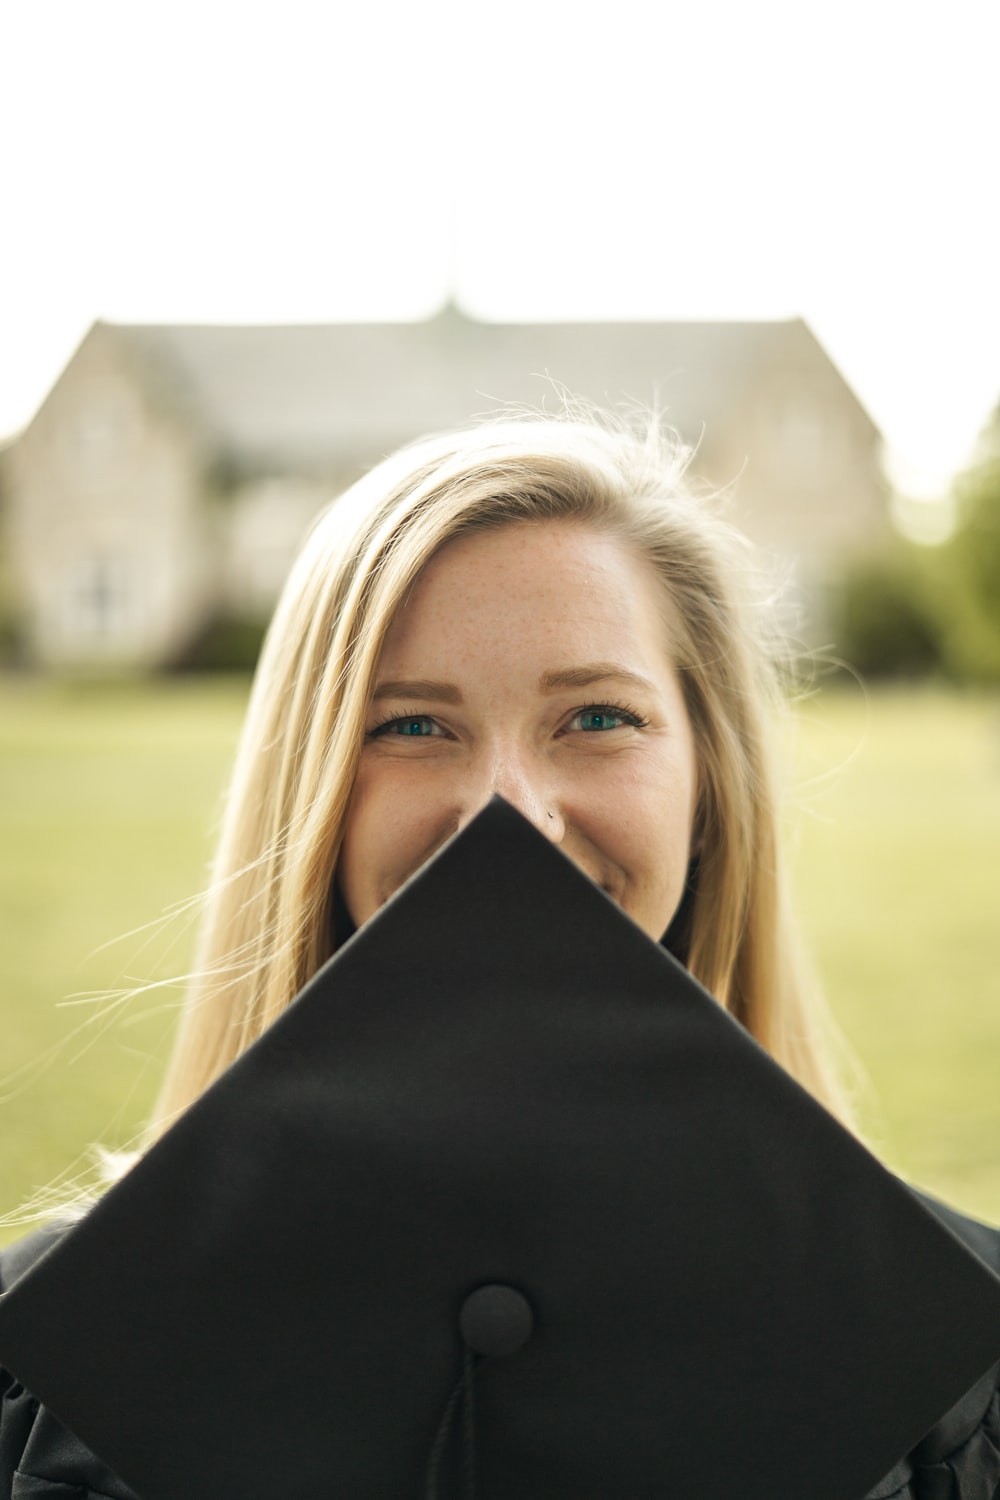 woman covering her face with black mortar board